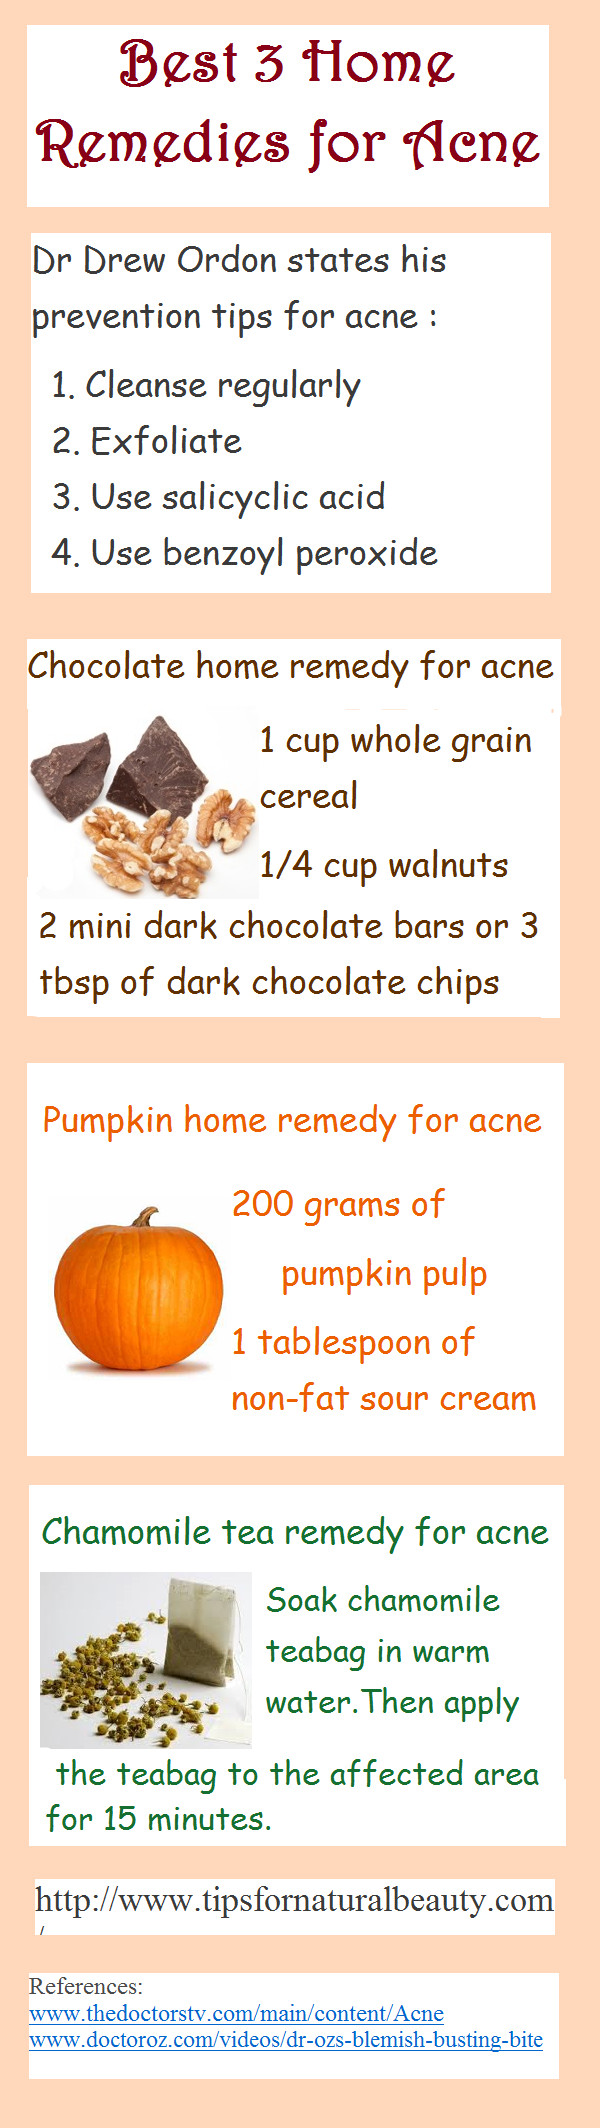 DIY Home Remedies  Three DIY Home Reme s for Acne Infographic